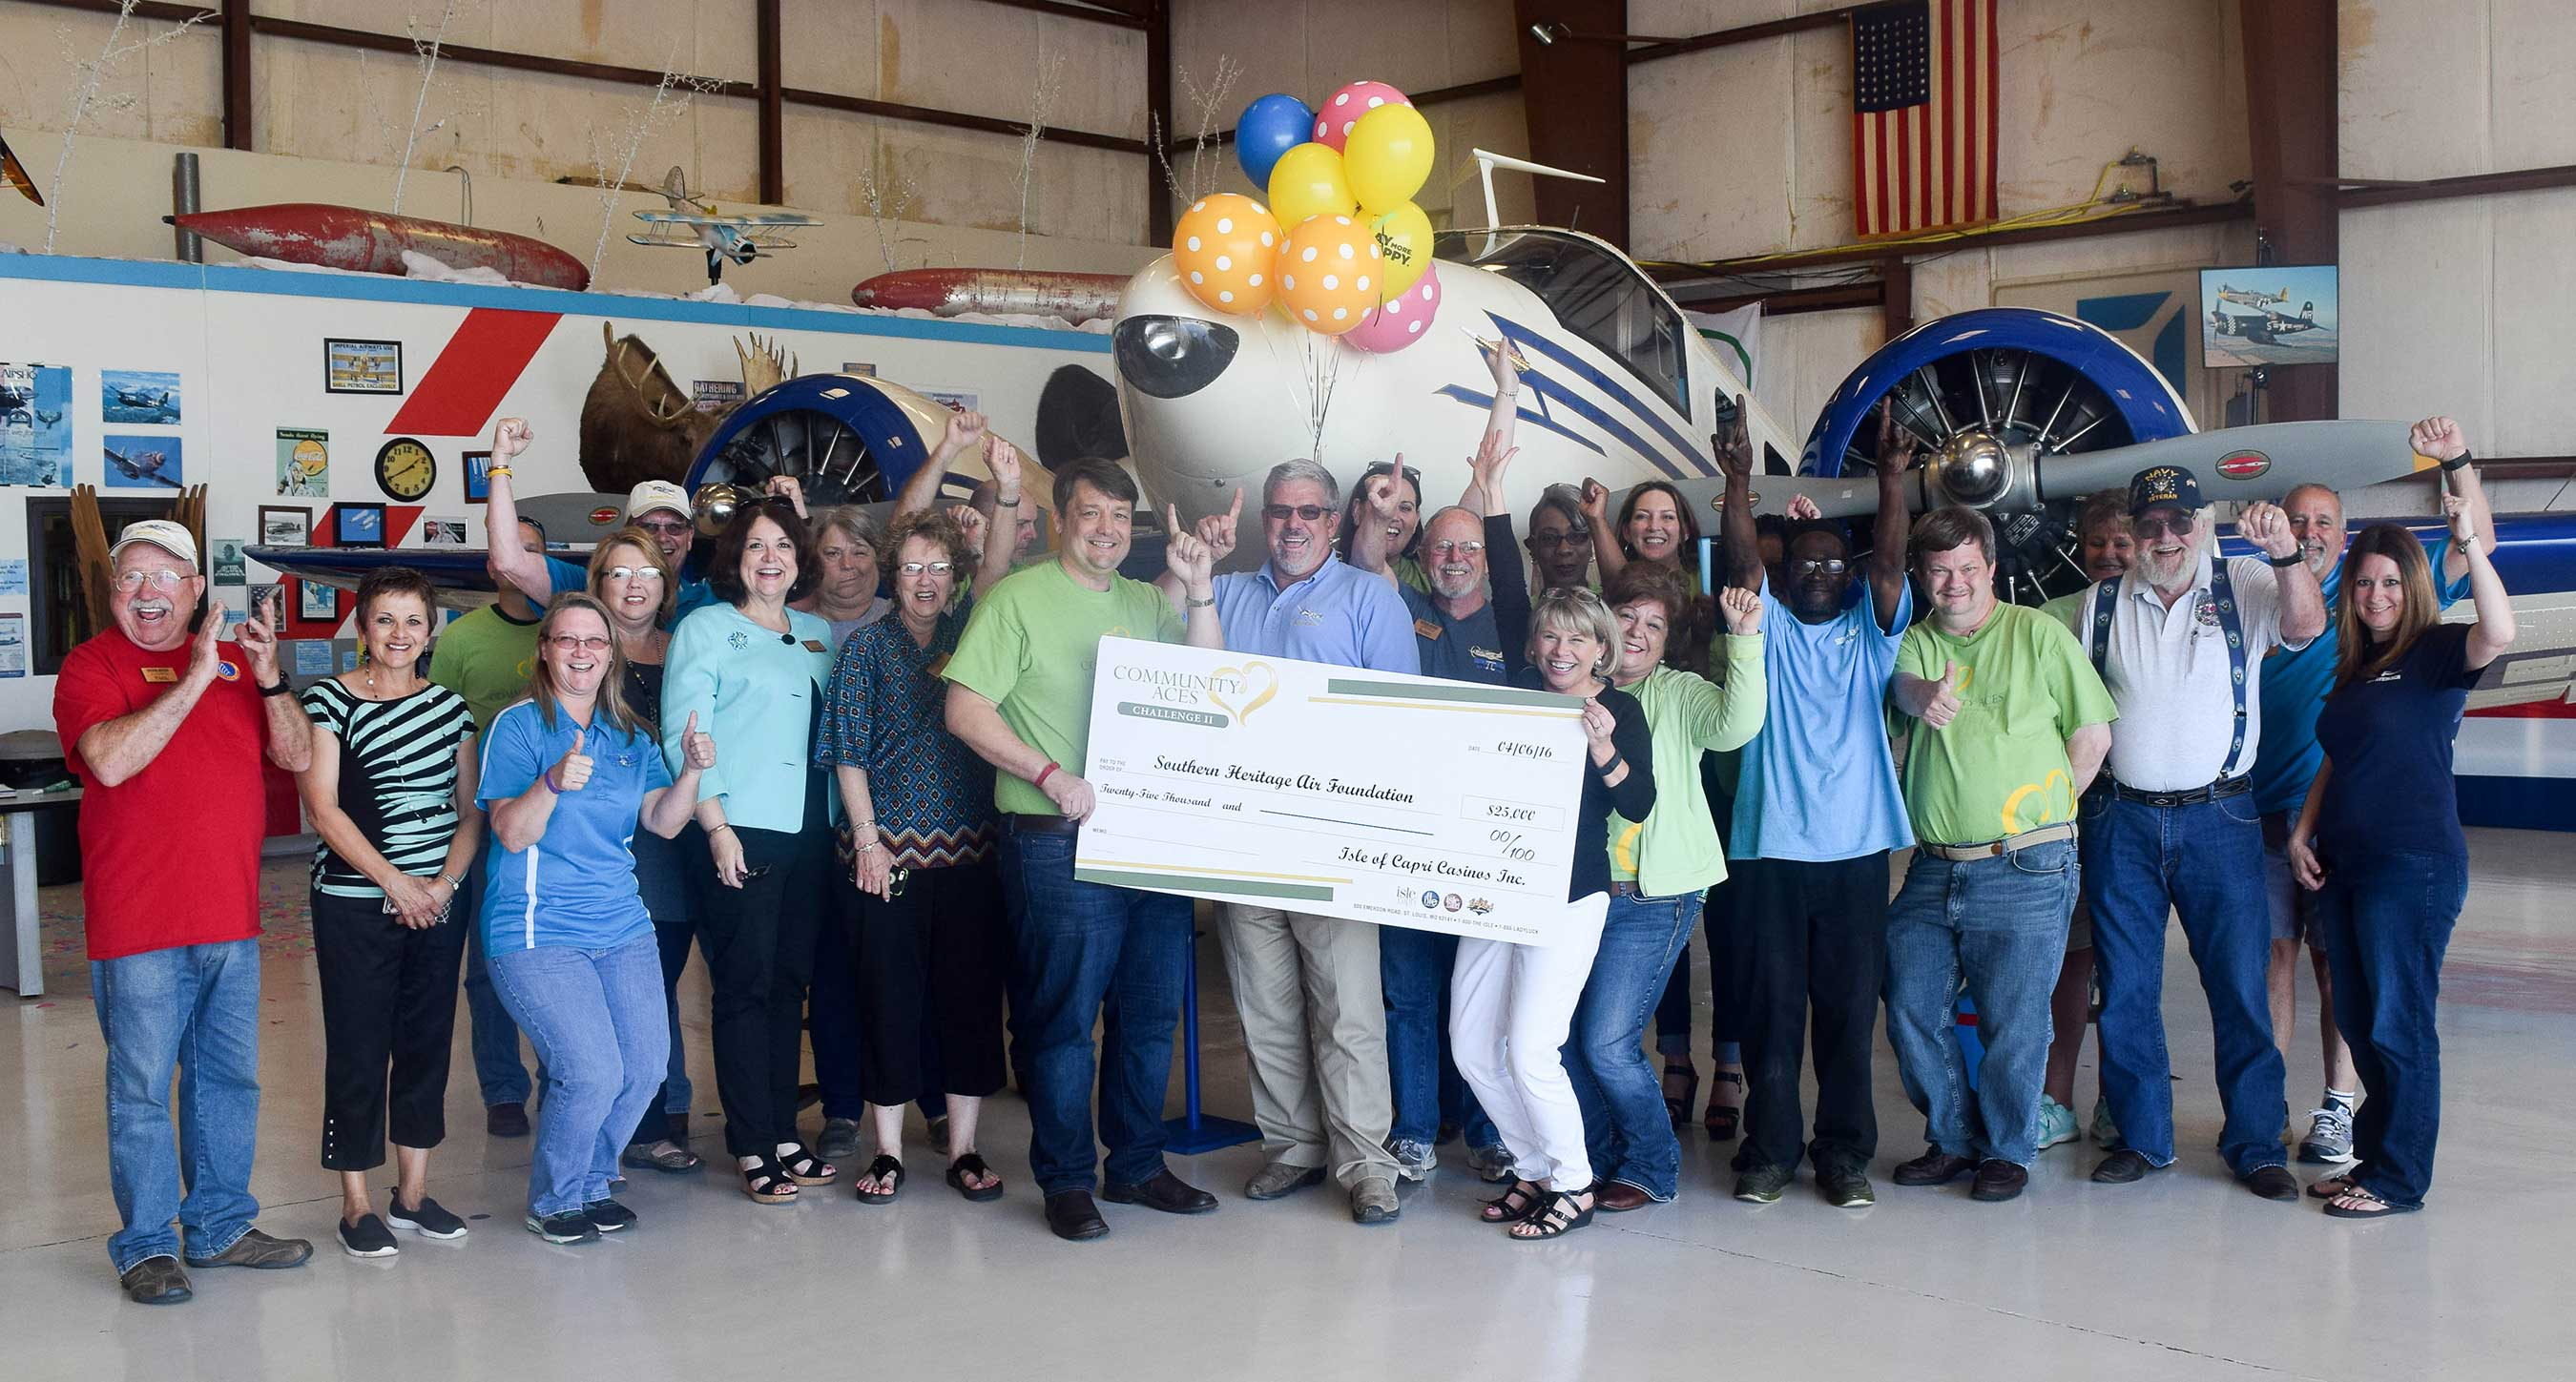 Southern Heritage Air Foundation, based in Tallulah, Louisiana, garnered over 6,000 votes to take home $25,000 in Community Aces Challenge 2